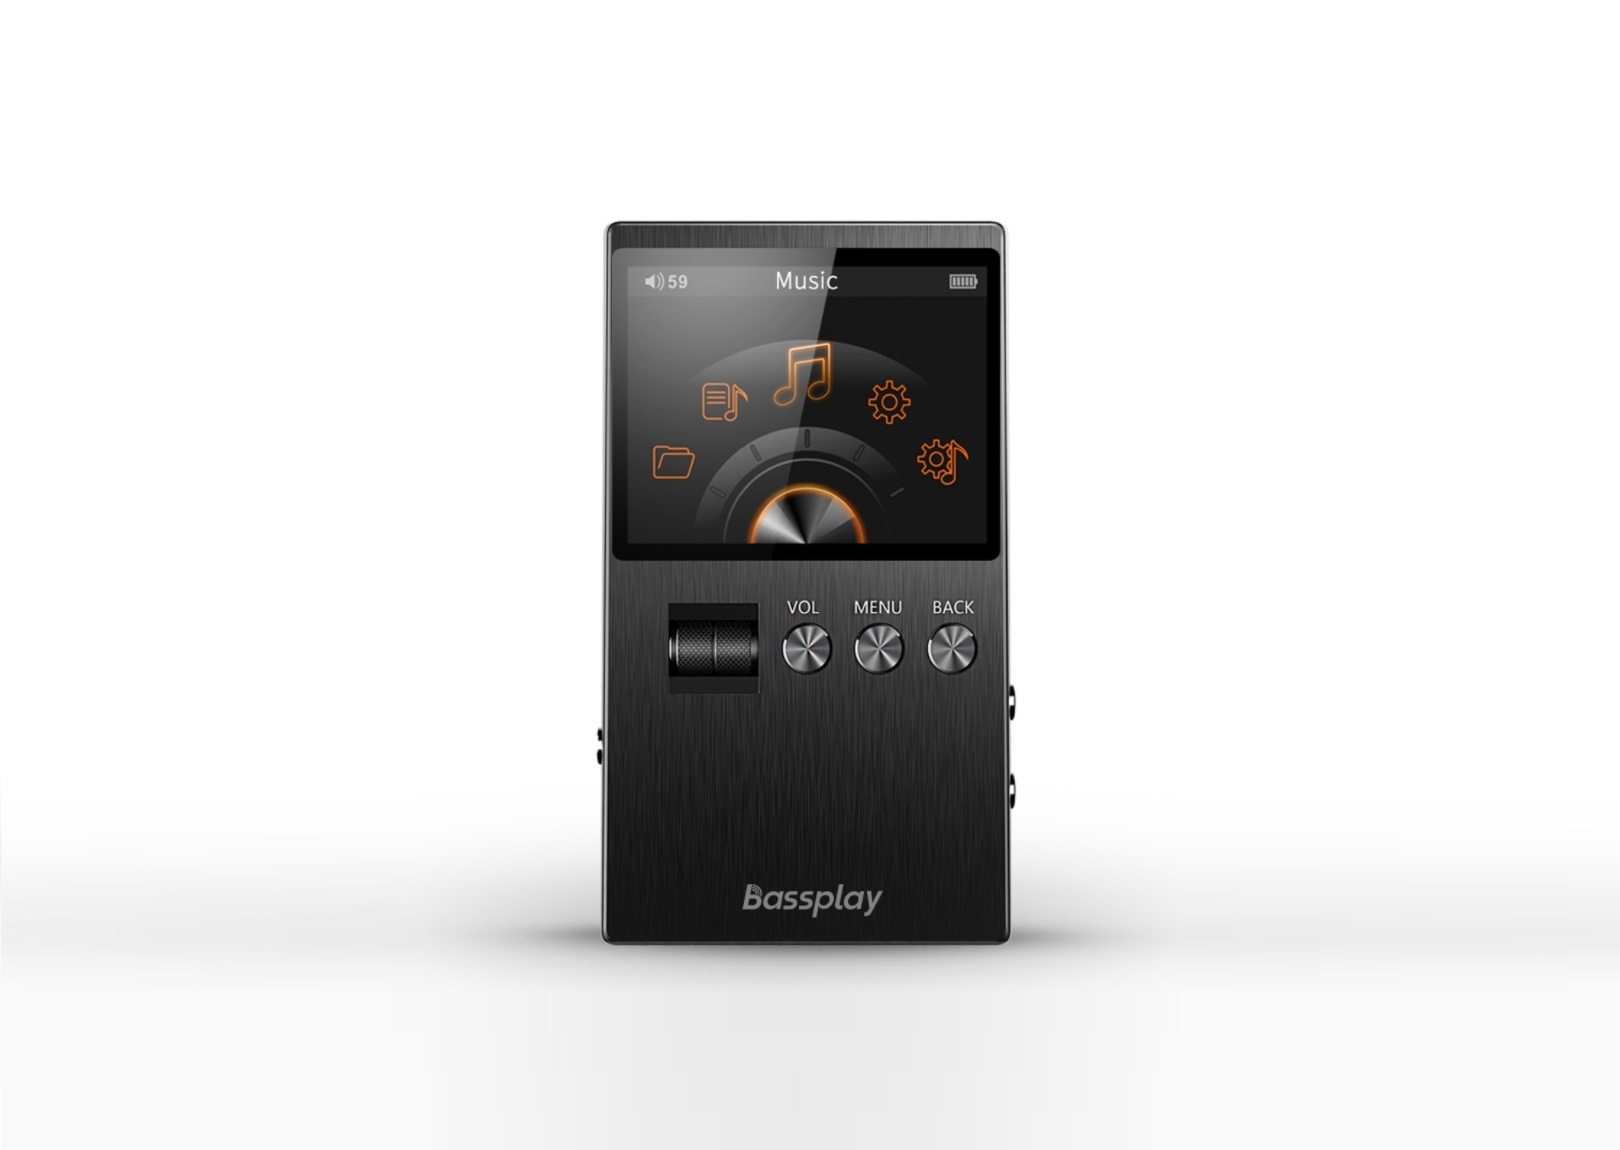 The 7 Best Audio Players for Walkers to Buy in 2019 The 7 Best Audio Players for Walkers to Buy in 2019 new pics